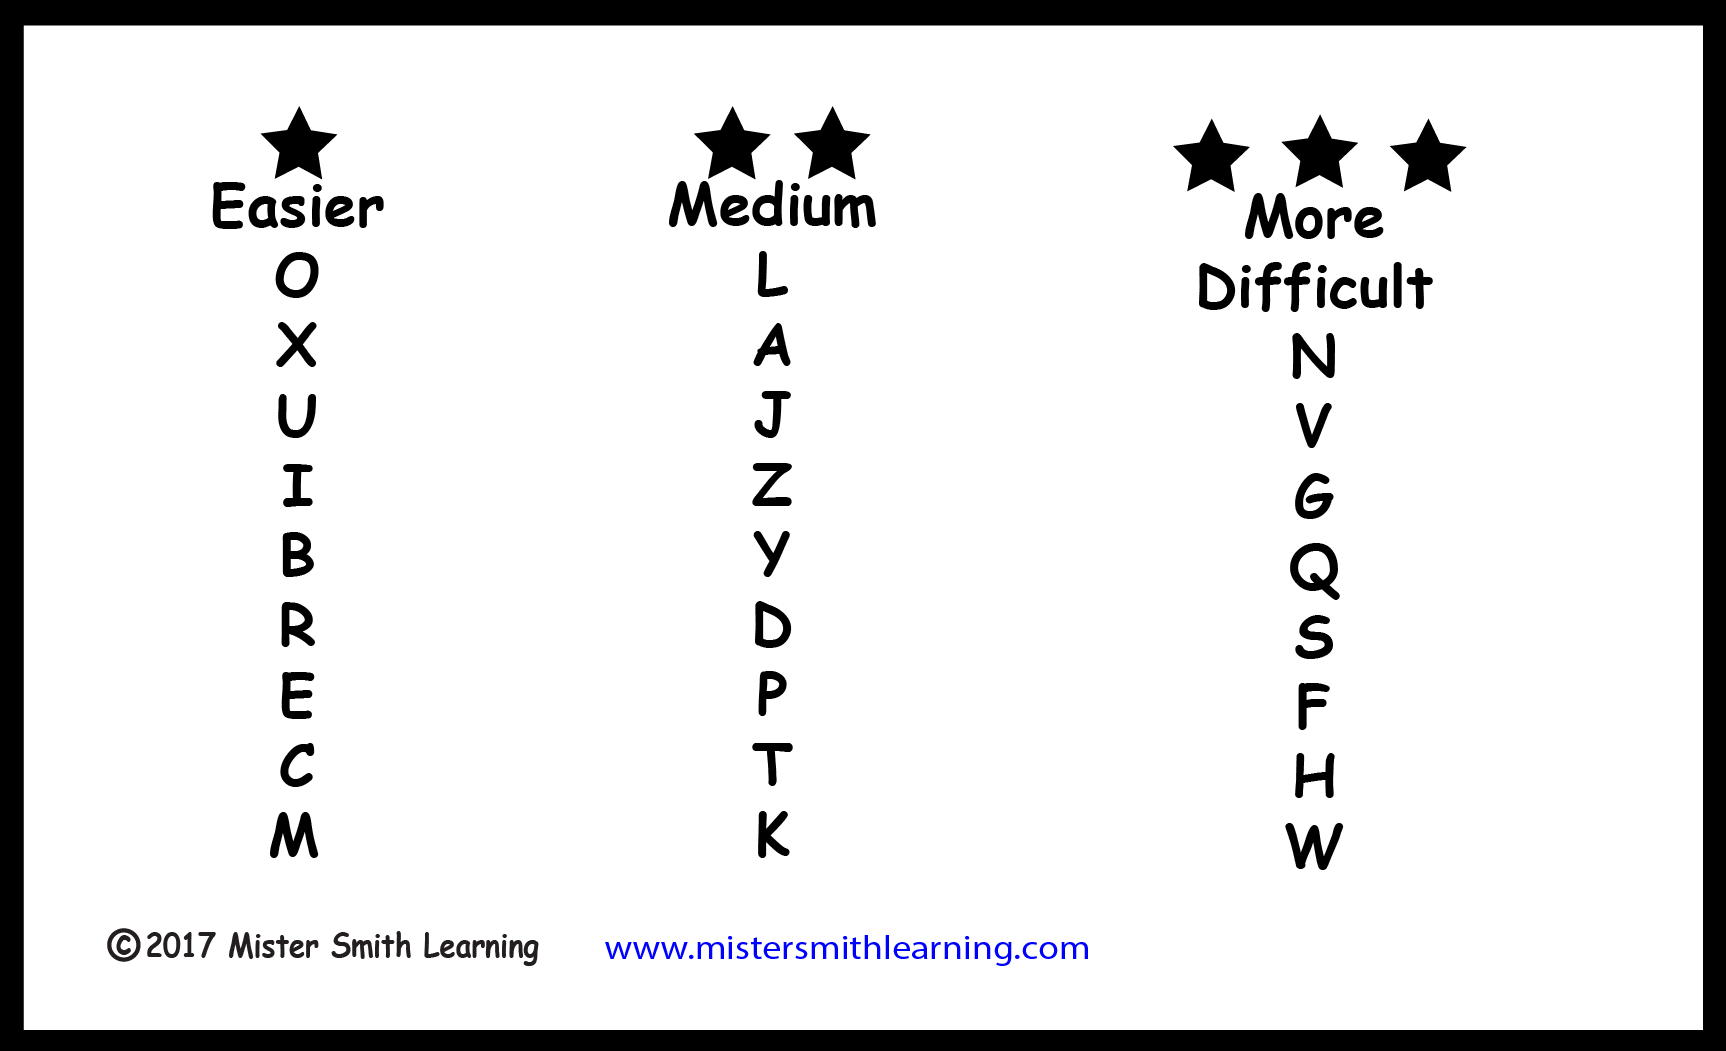 The order in which the letters are introduced so that the student feels successful and motivated to continue to learn.